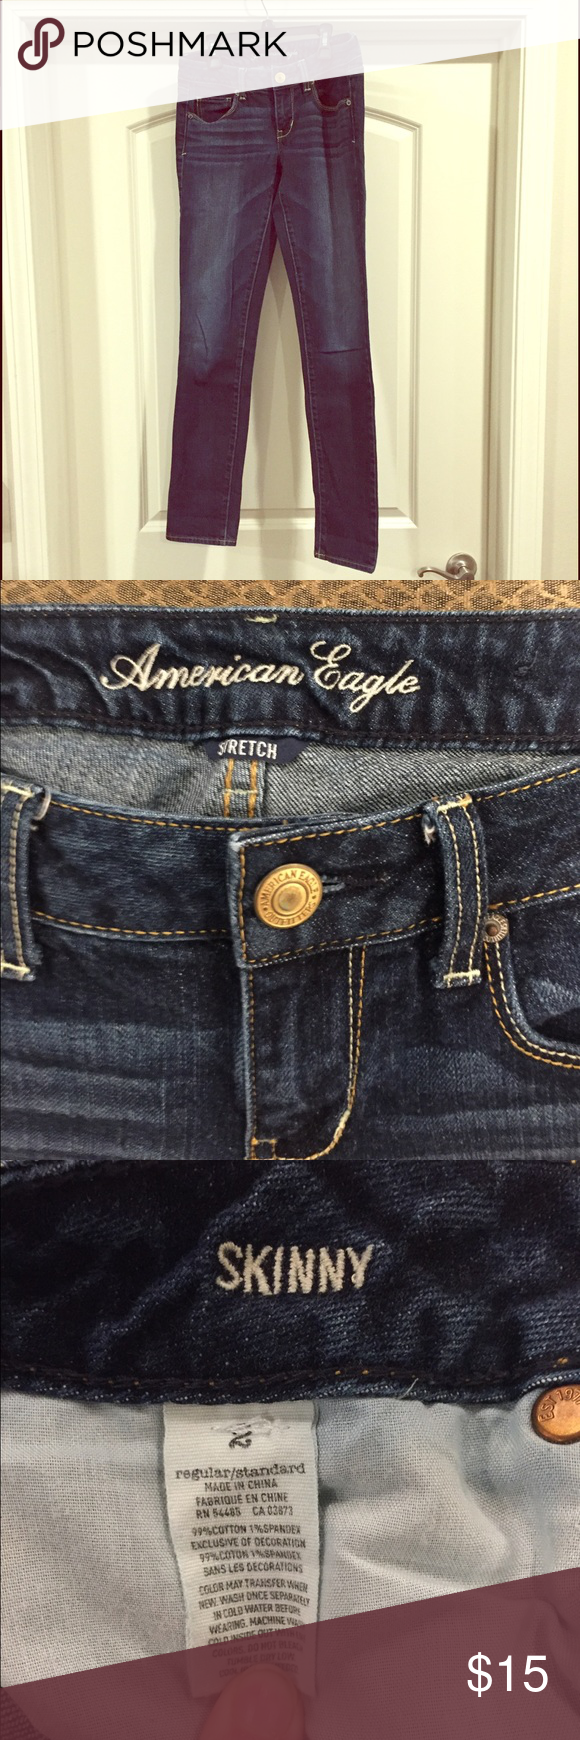 AE Skinny Jeans - Size 2 Dark wash Skinny Jeans from American Eagle! Size 2 and are older style so jean material (not jegging) but still Skinny Jeans! American Eagle Outfitters Jeans Skinny